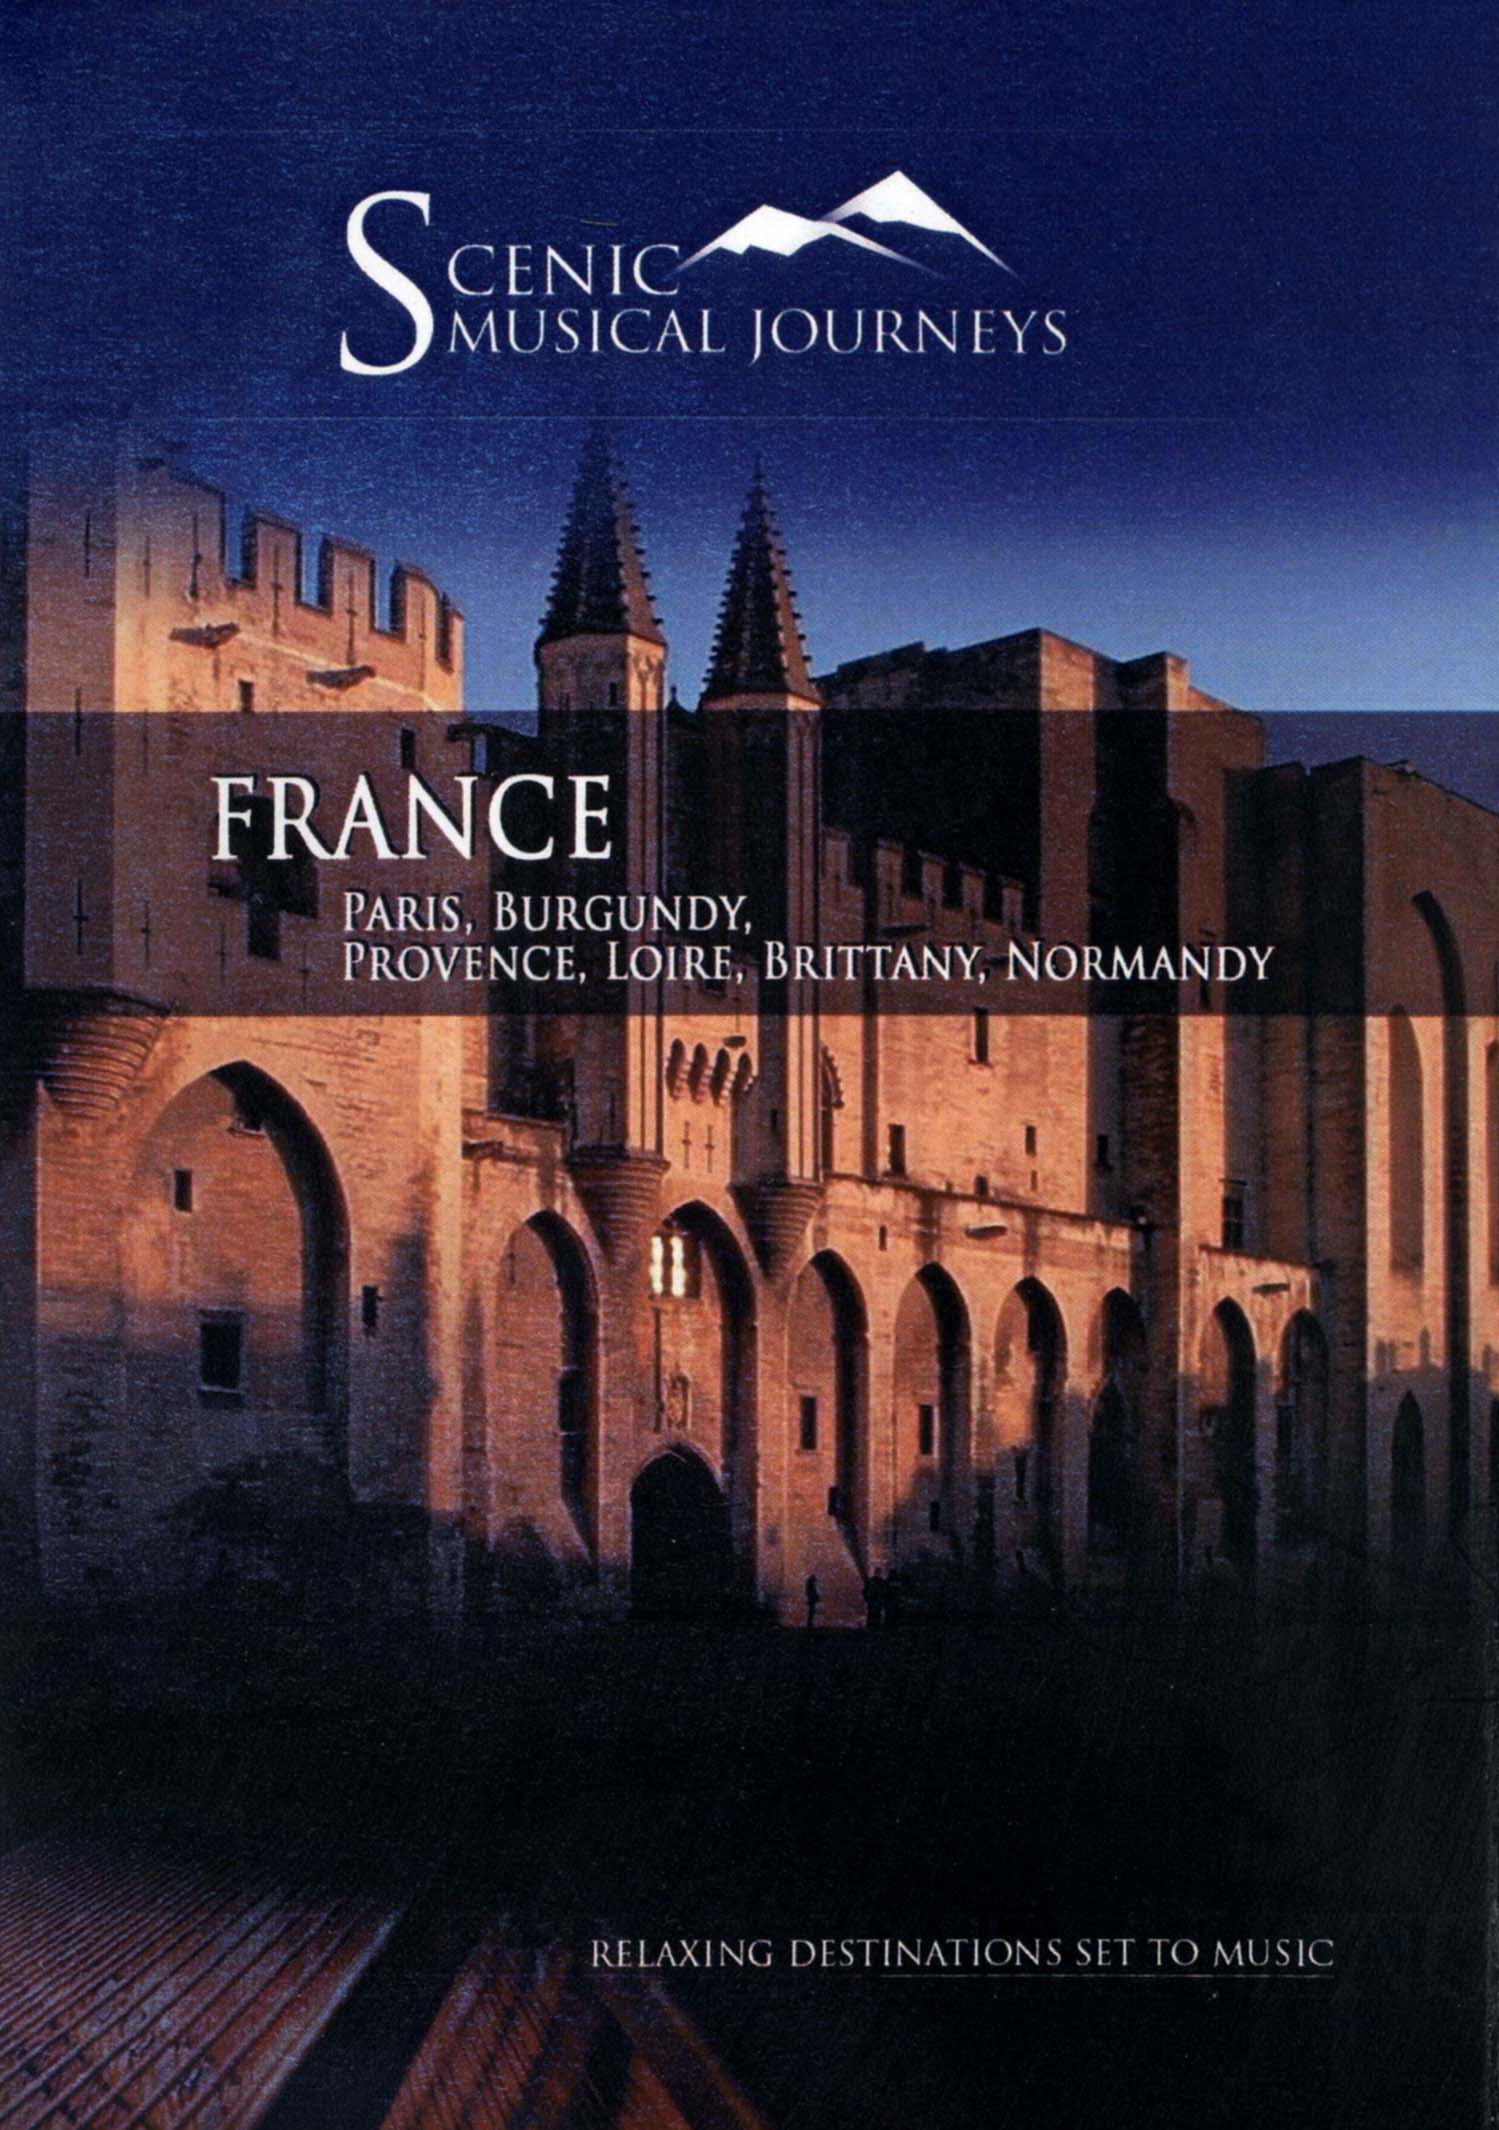 Scenic Musical Journeys: France - Paris, Burgundy, Provence, Loire, Brittany, Normandy